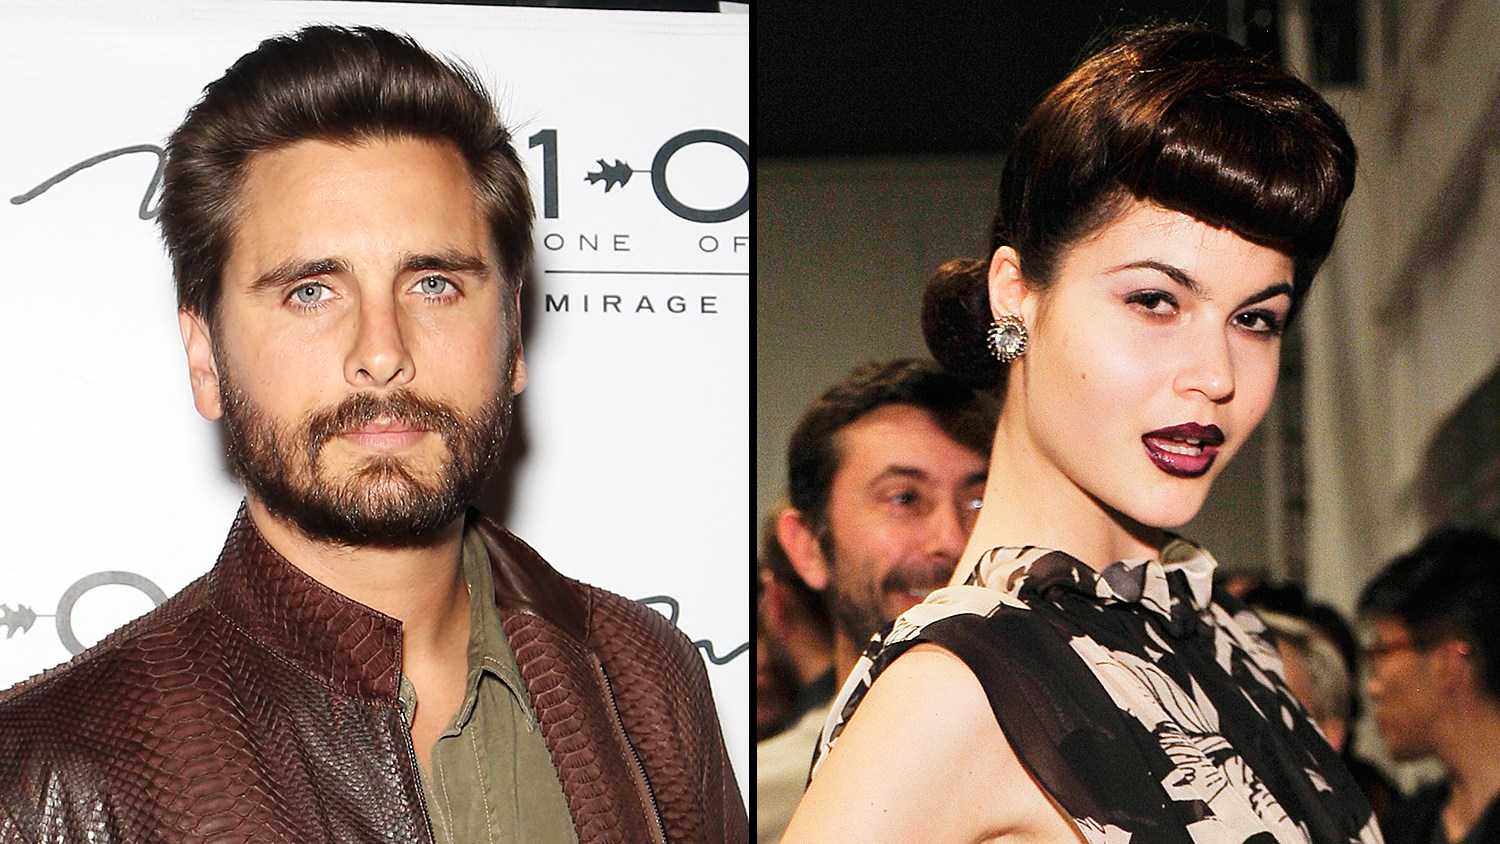 Scott Disick and Lina Sandberg